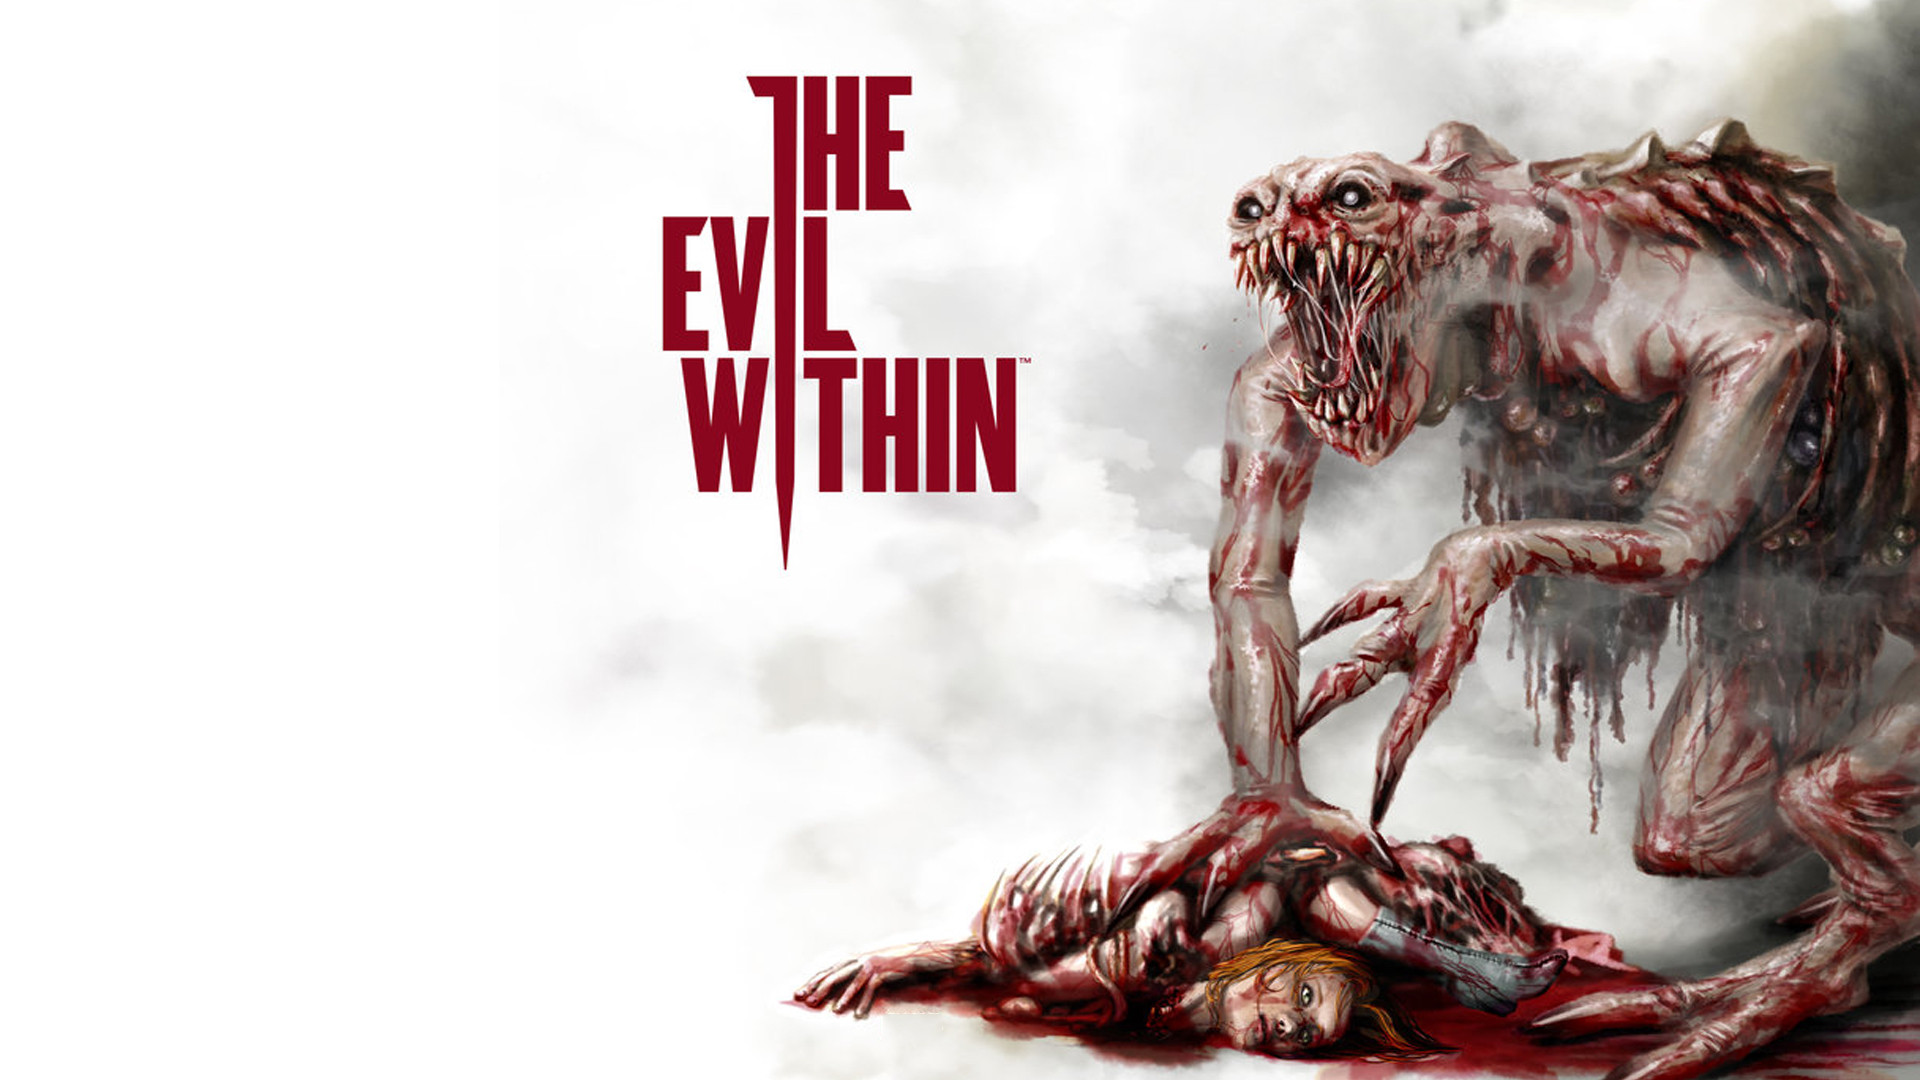 The Evil Within (1920x1080) : wallpapers